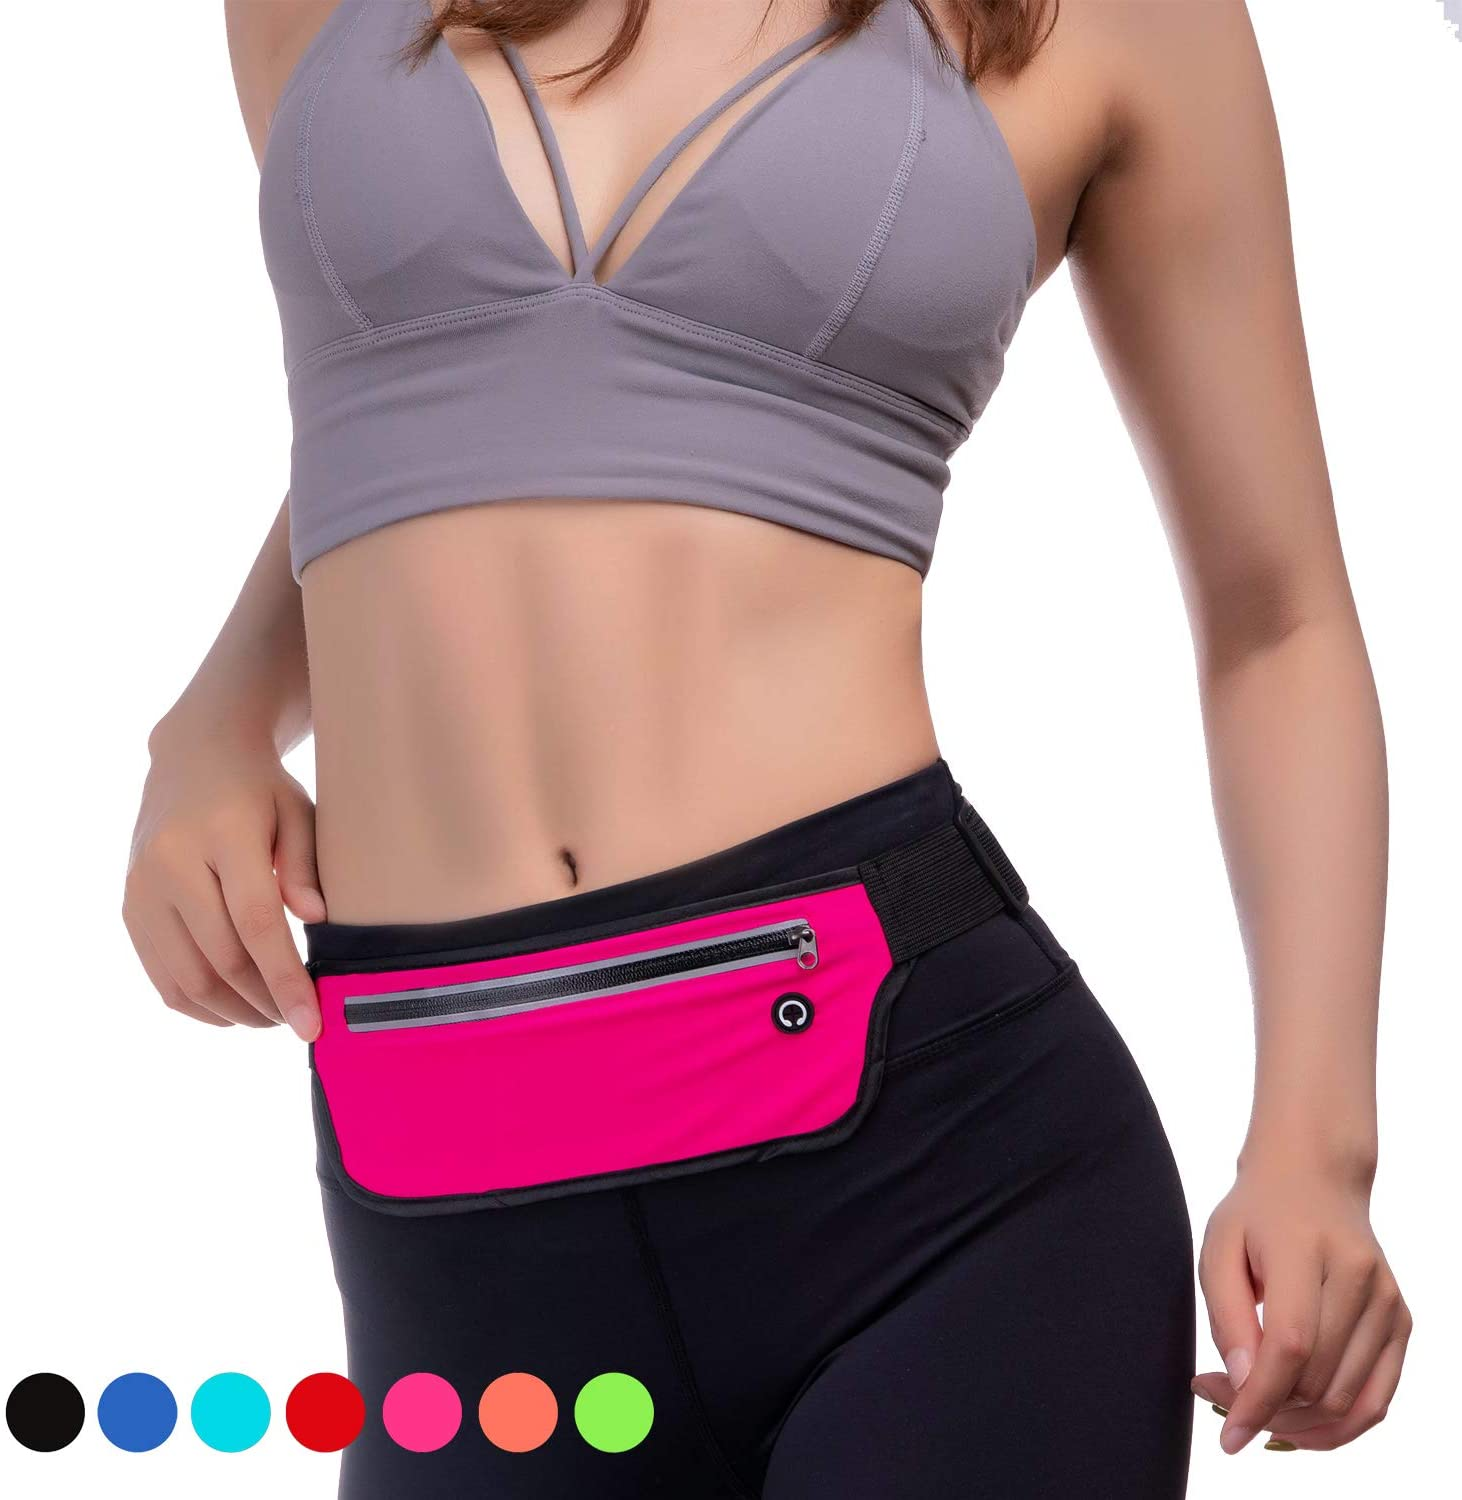 KEGE Multiple Color Slim Reflective Running Belt Fanny Pack, Bounce Free Water Resistant Exercise Workout Pouch Lightweight Waist Pack Gym Phone Holder for All Kinds of Phones